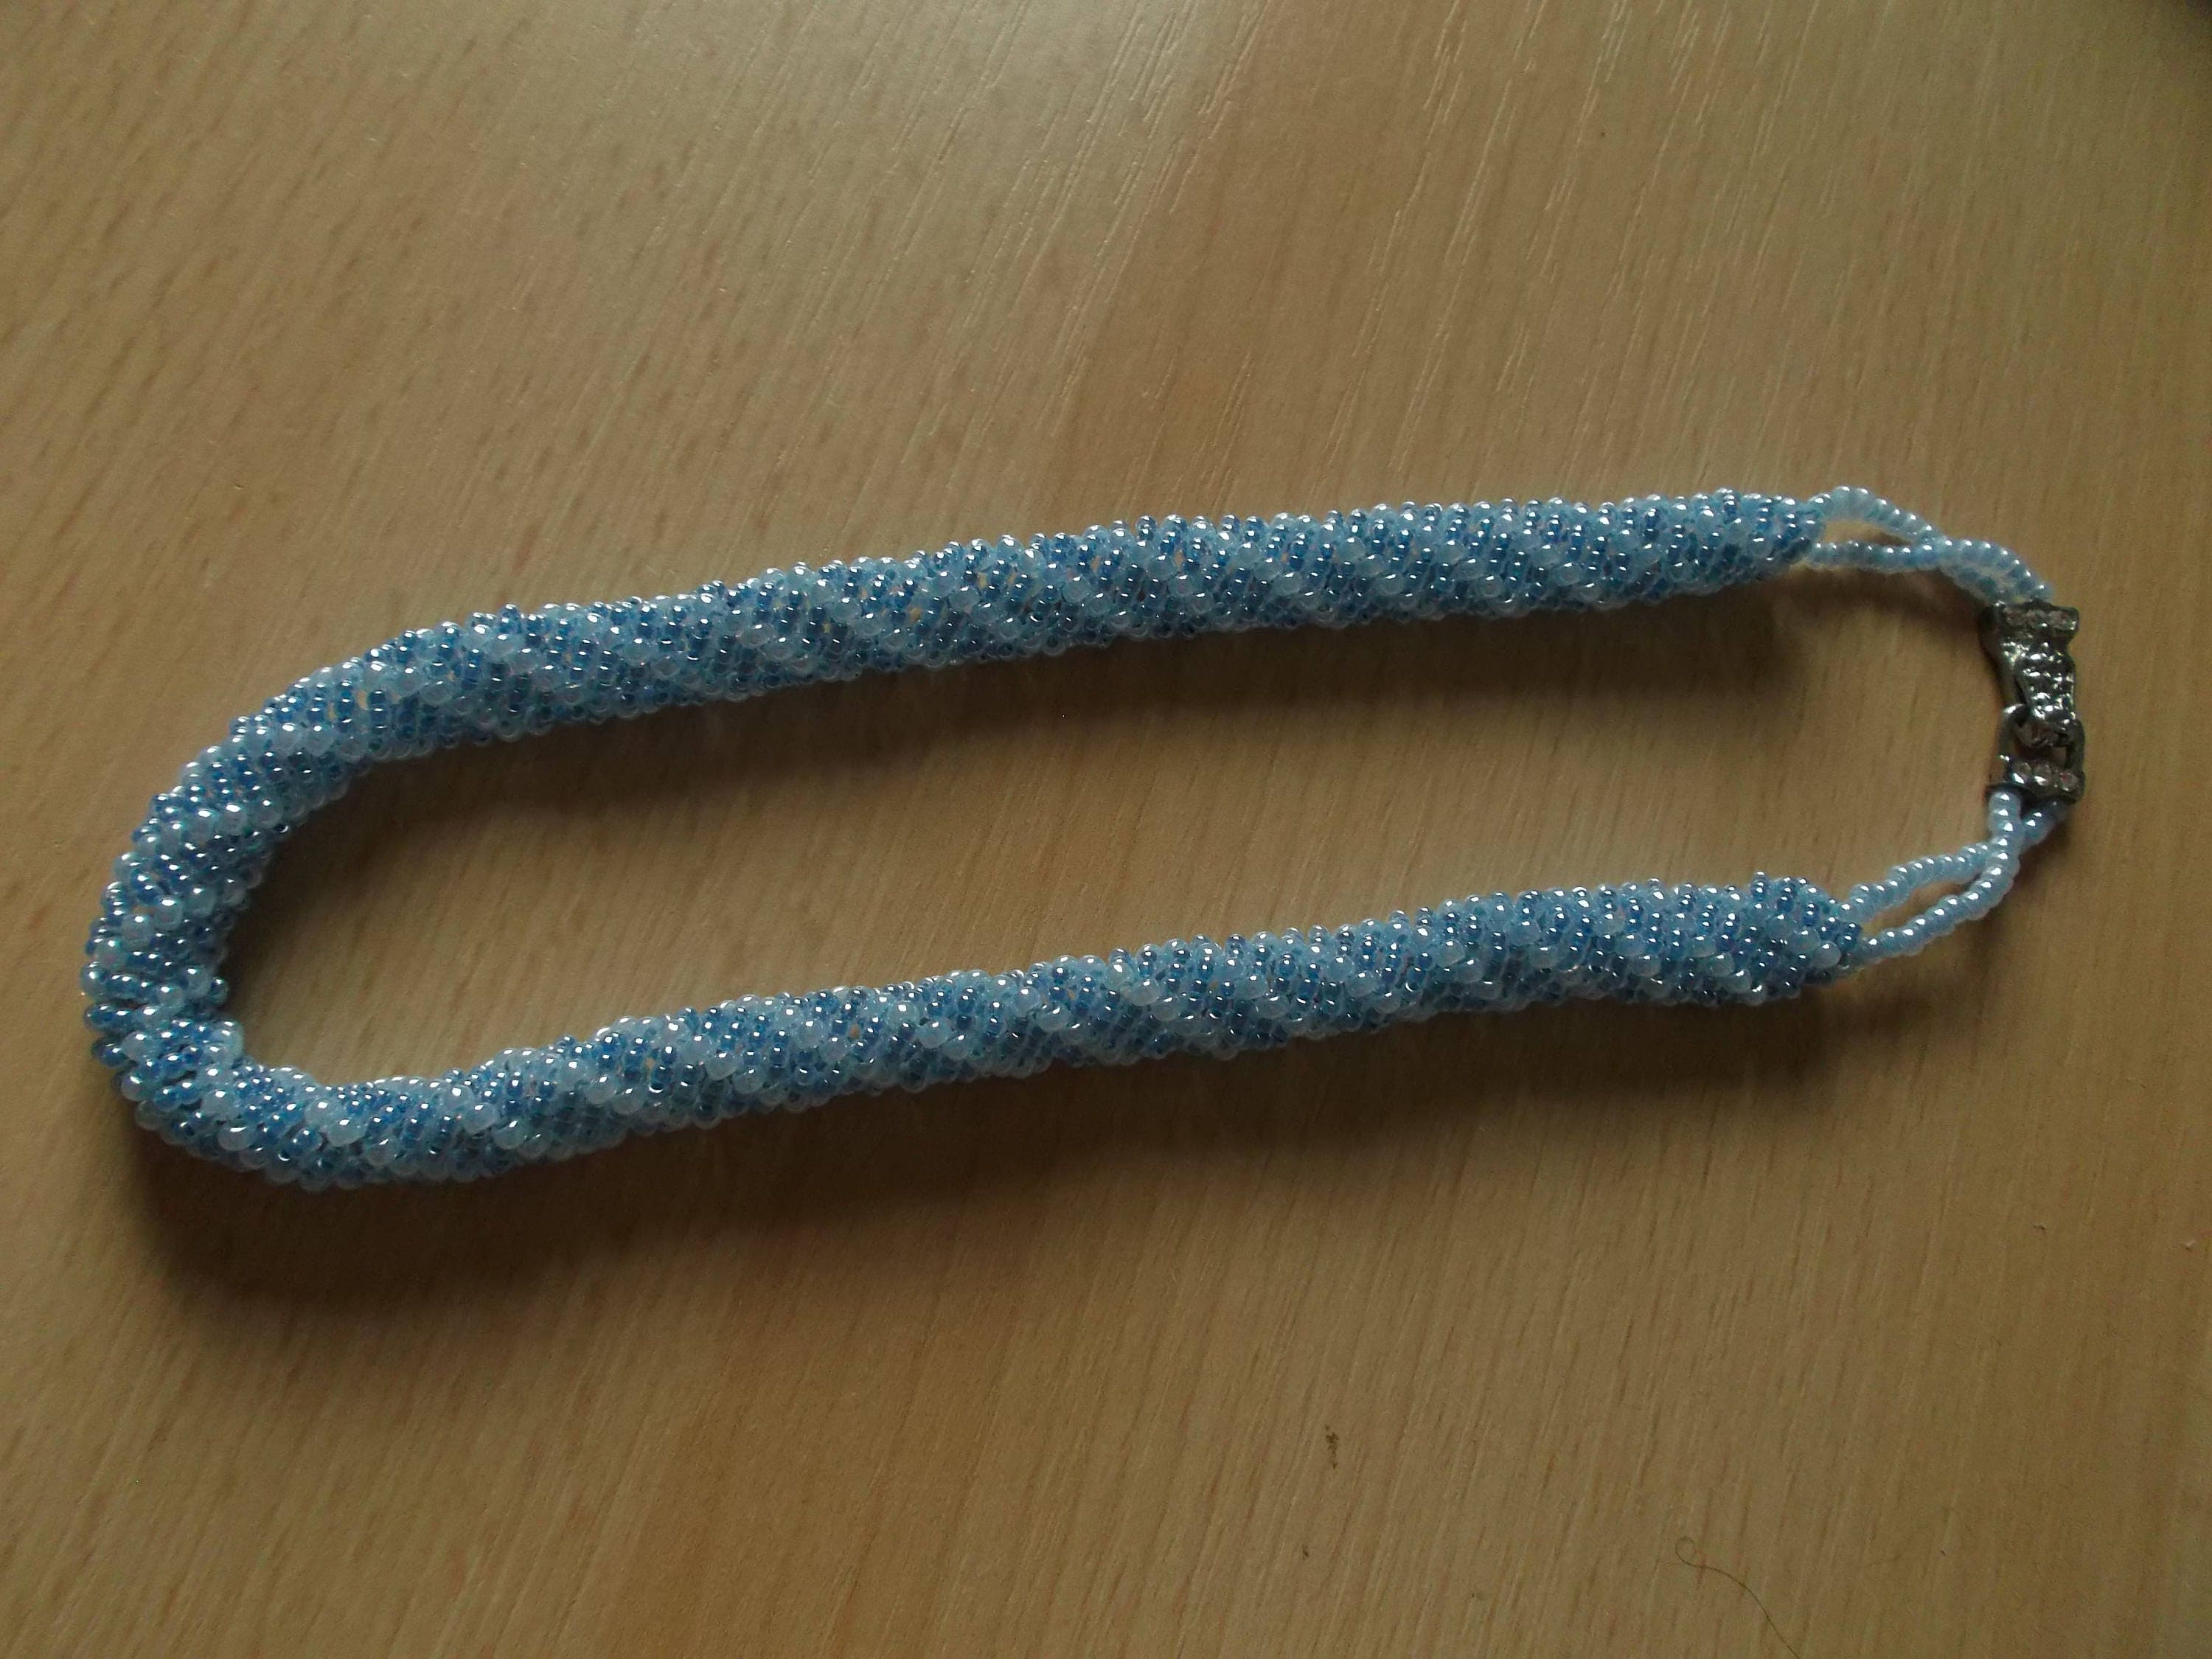 Cornflower blue seed bead rope necklace with jeweled magnetic clasp